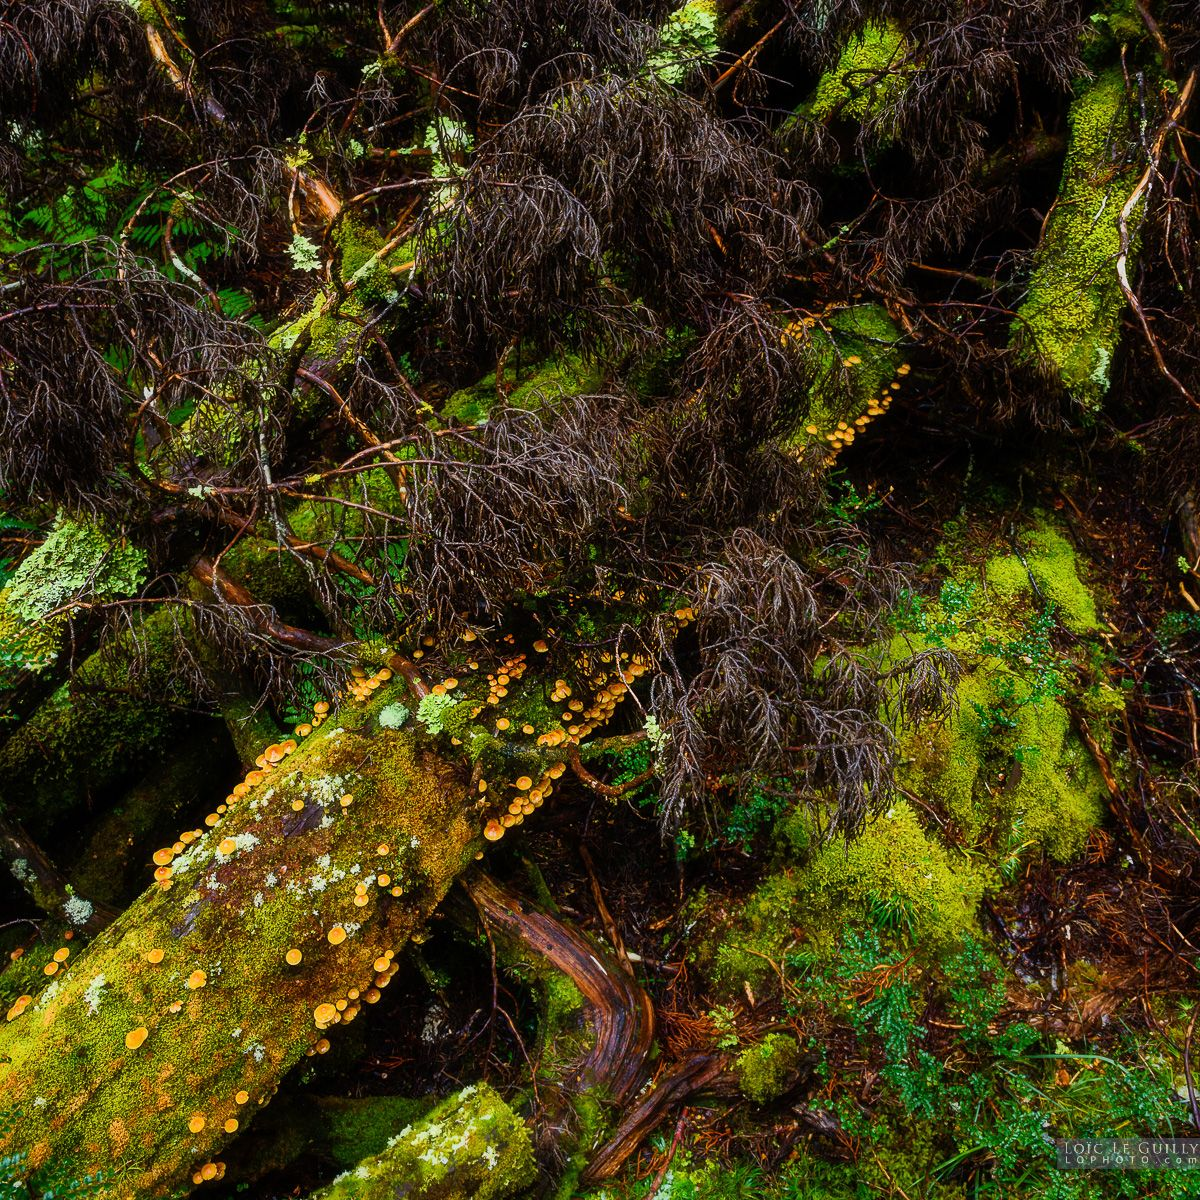 The messy, organic, moist and vibrant rainforest floor at